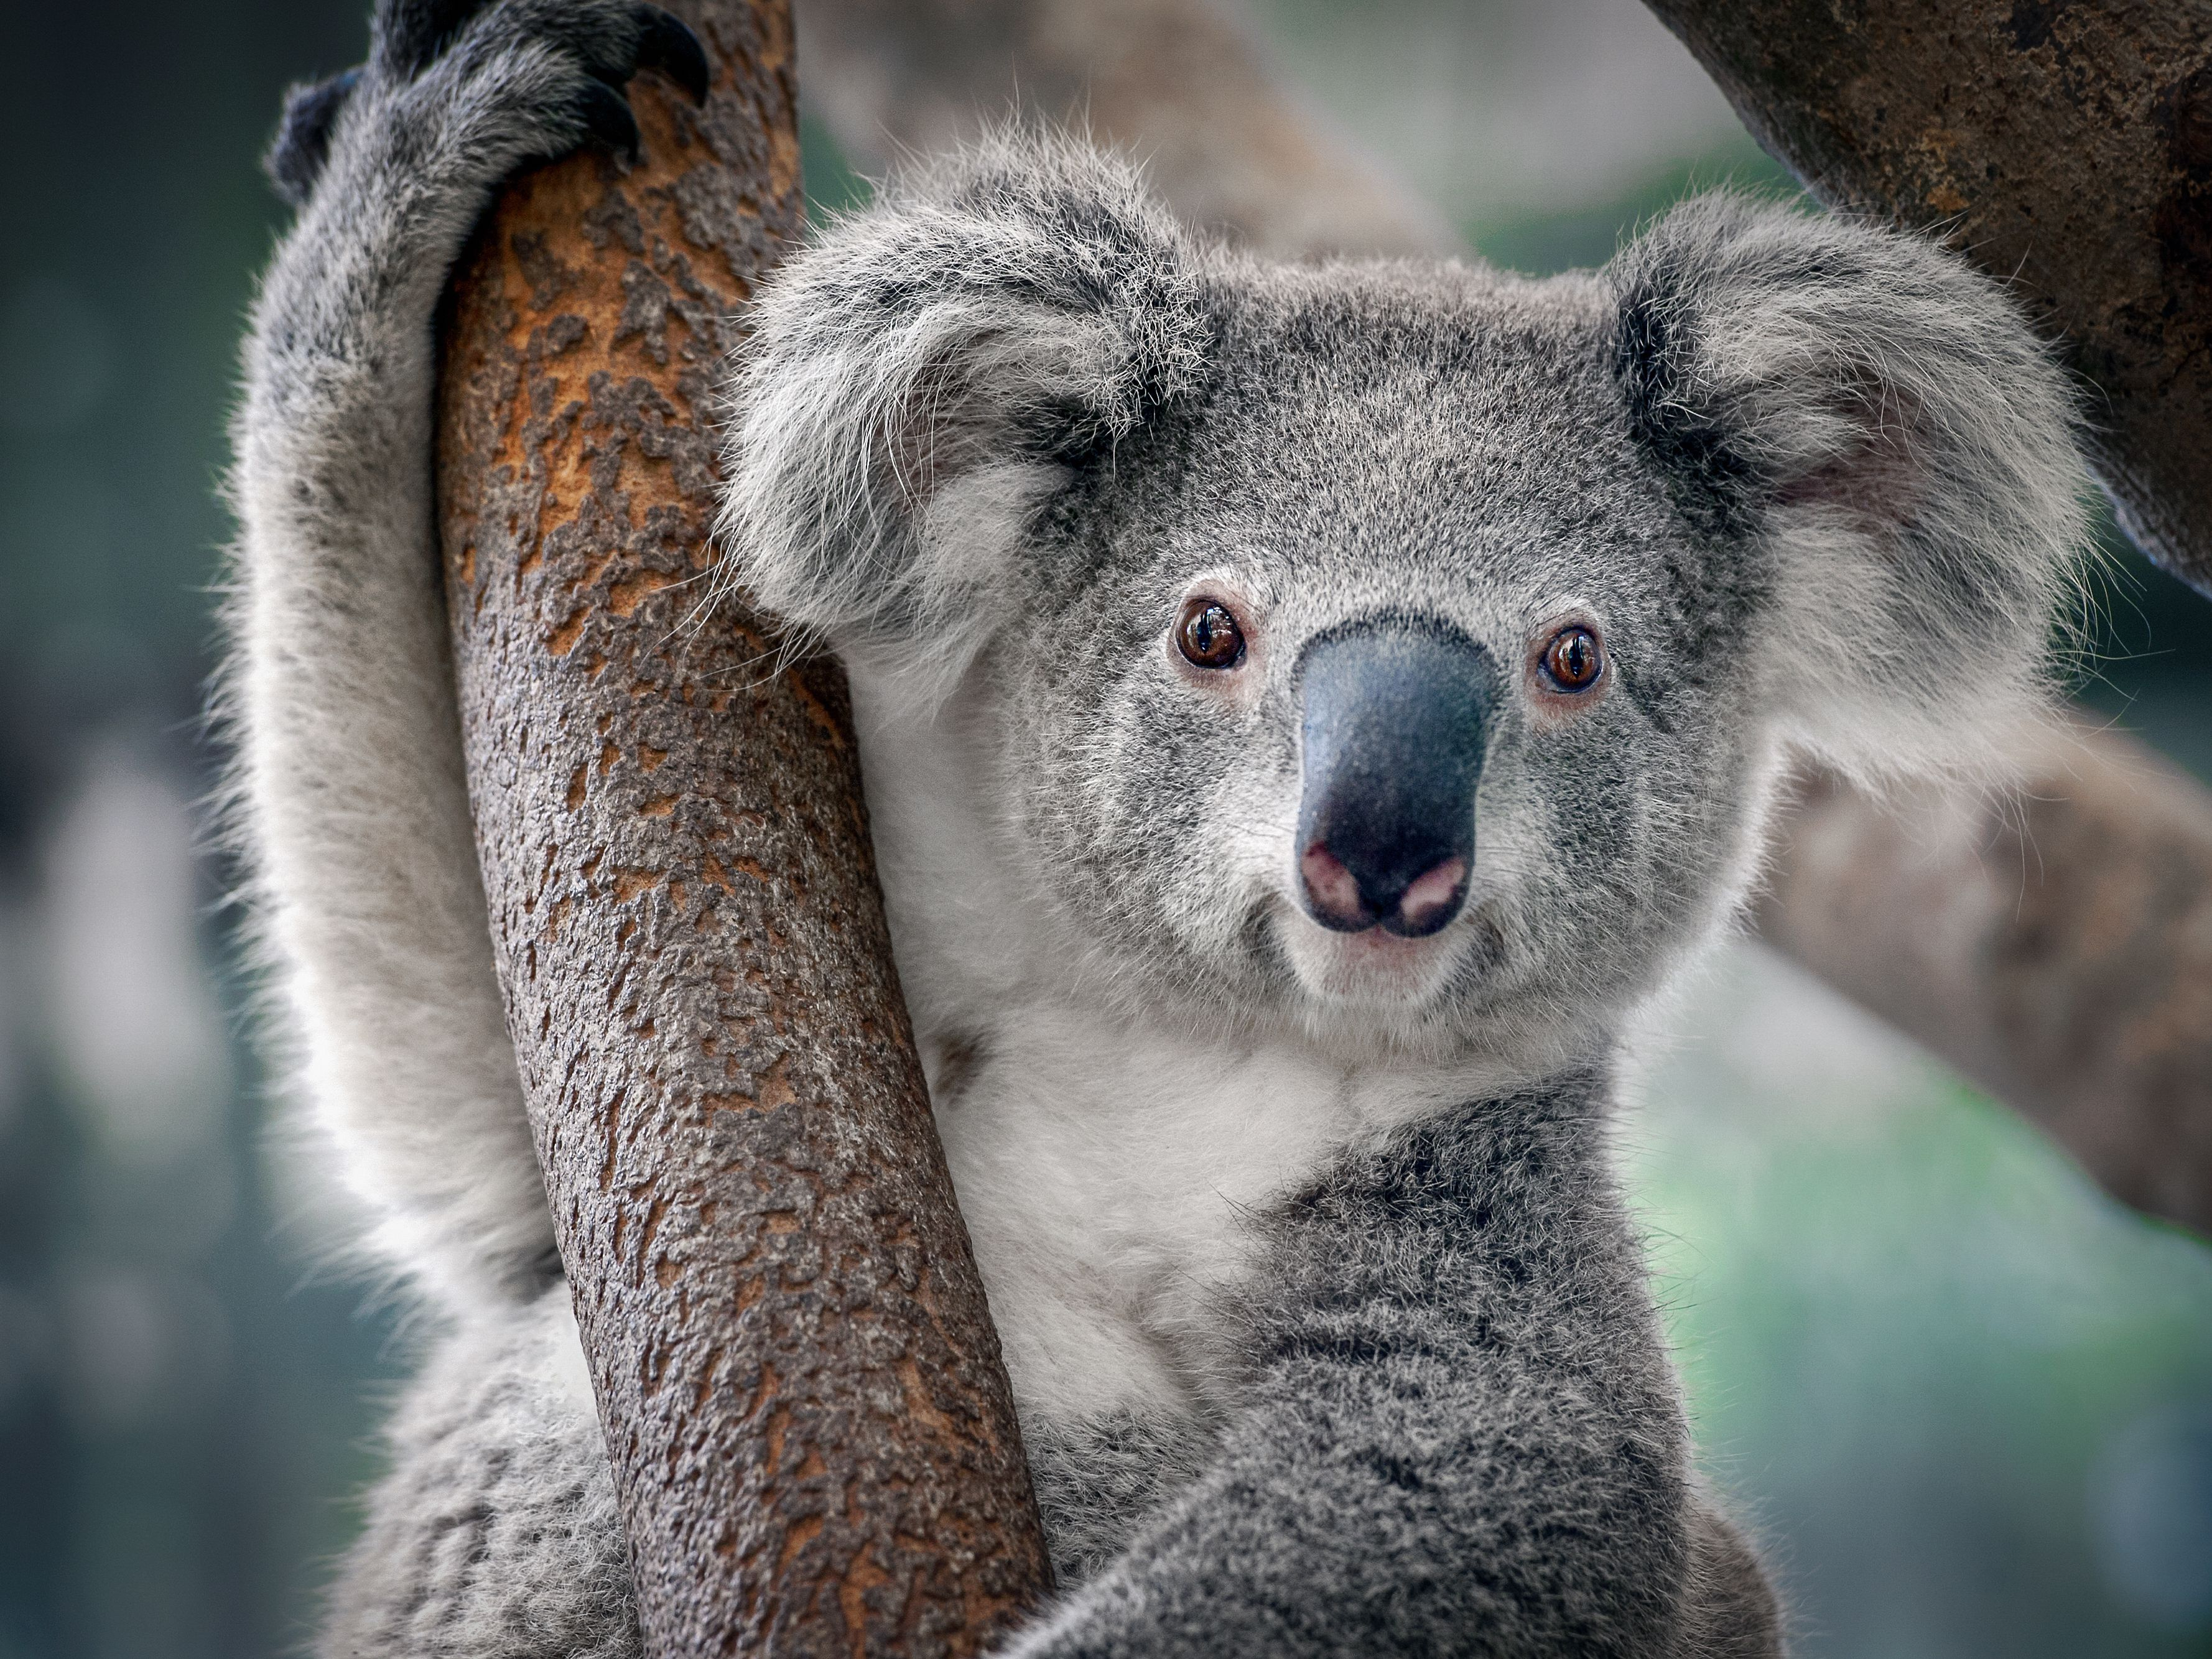 9 Things You Didn't Know About Koalas